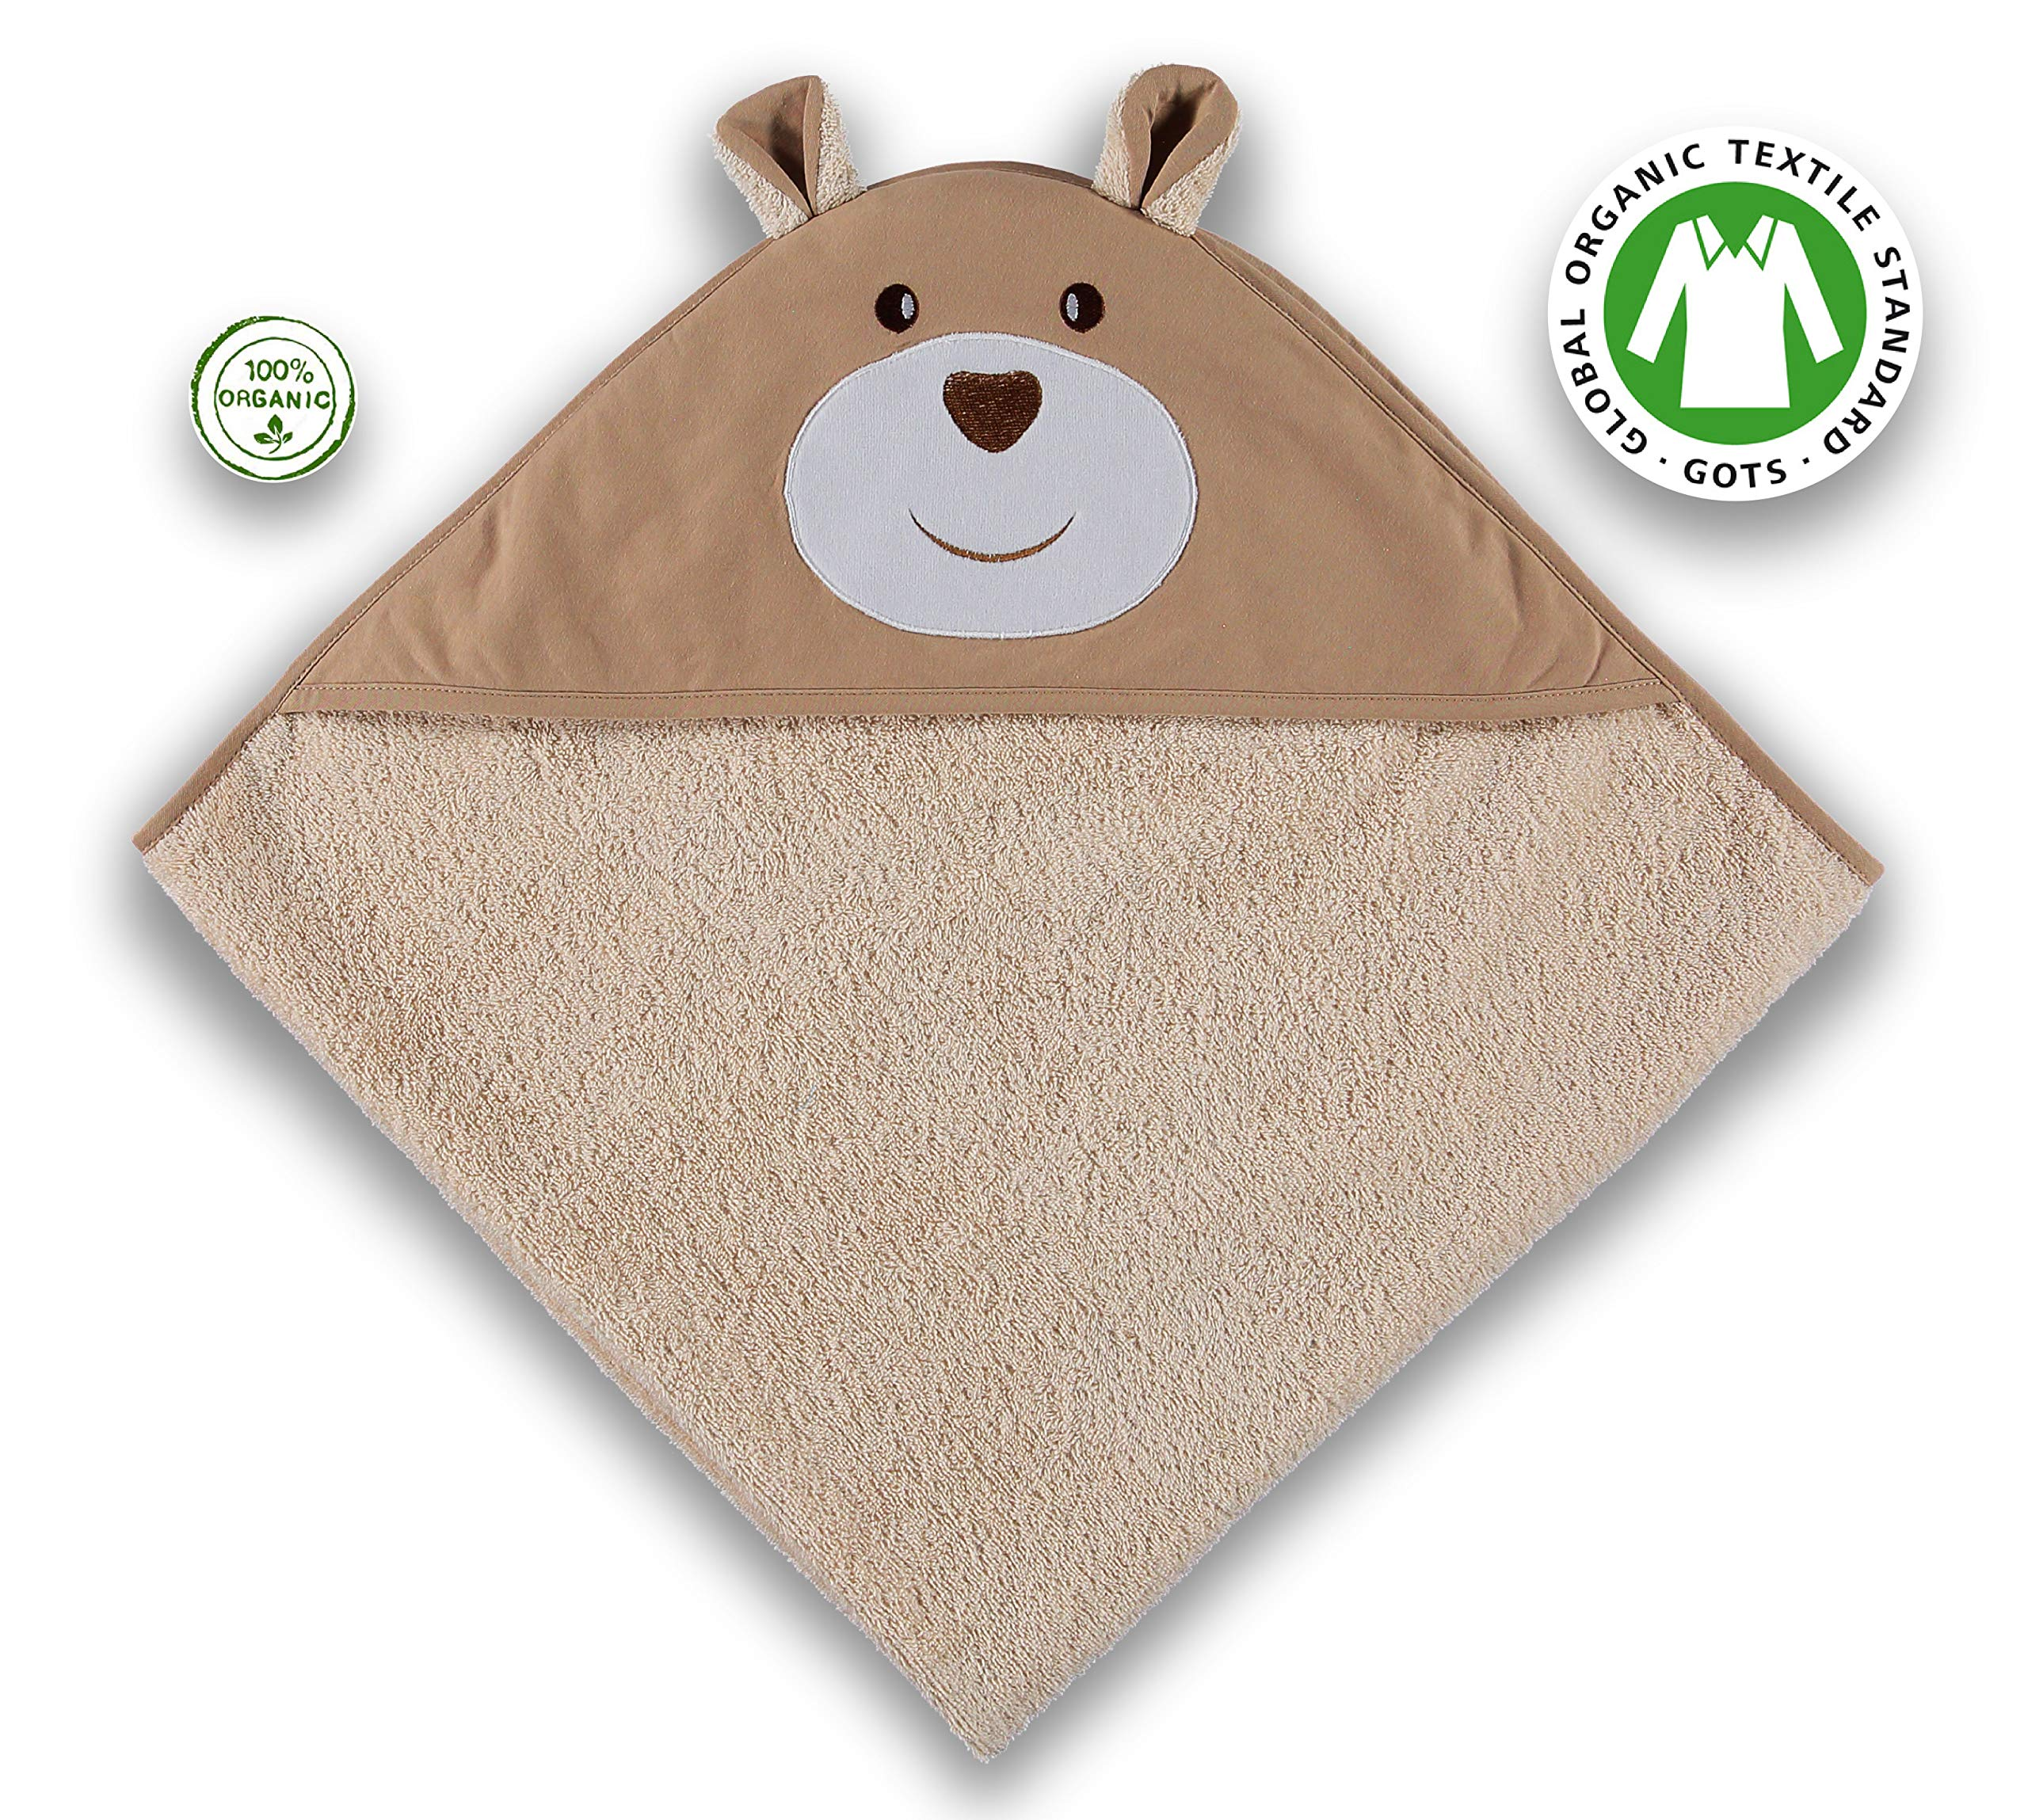 Soulwell Baby Organic Cotton Hooded Bath Towel - Super Soft Cute Design Smooth Absorbent Premium Quality GOTS Certified Animal Face Hooded Towel 35.5'' x 35.5'' (Beige/Bear) by Soulwell